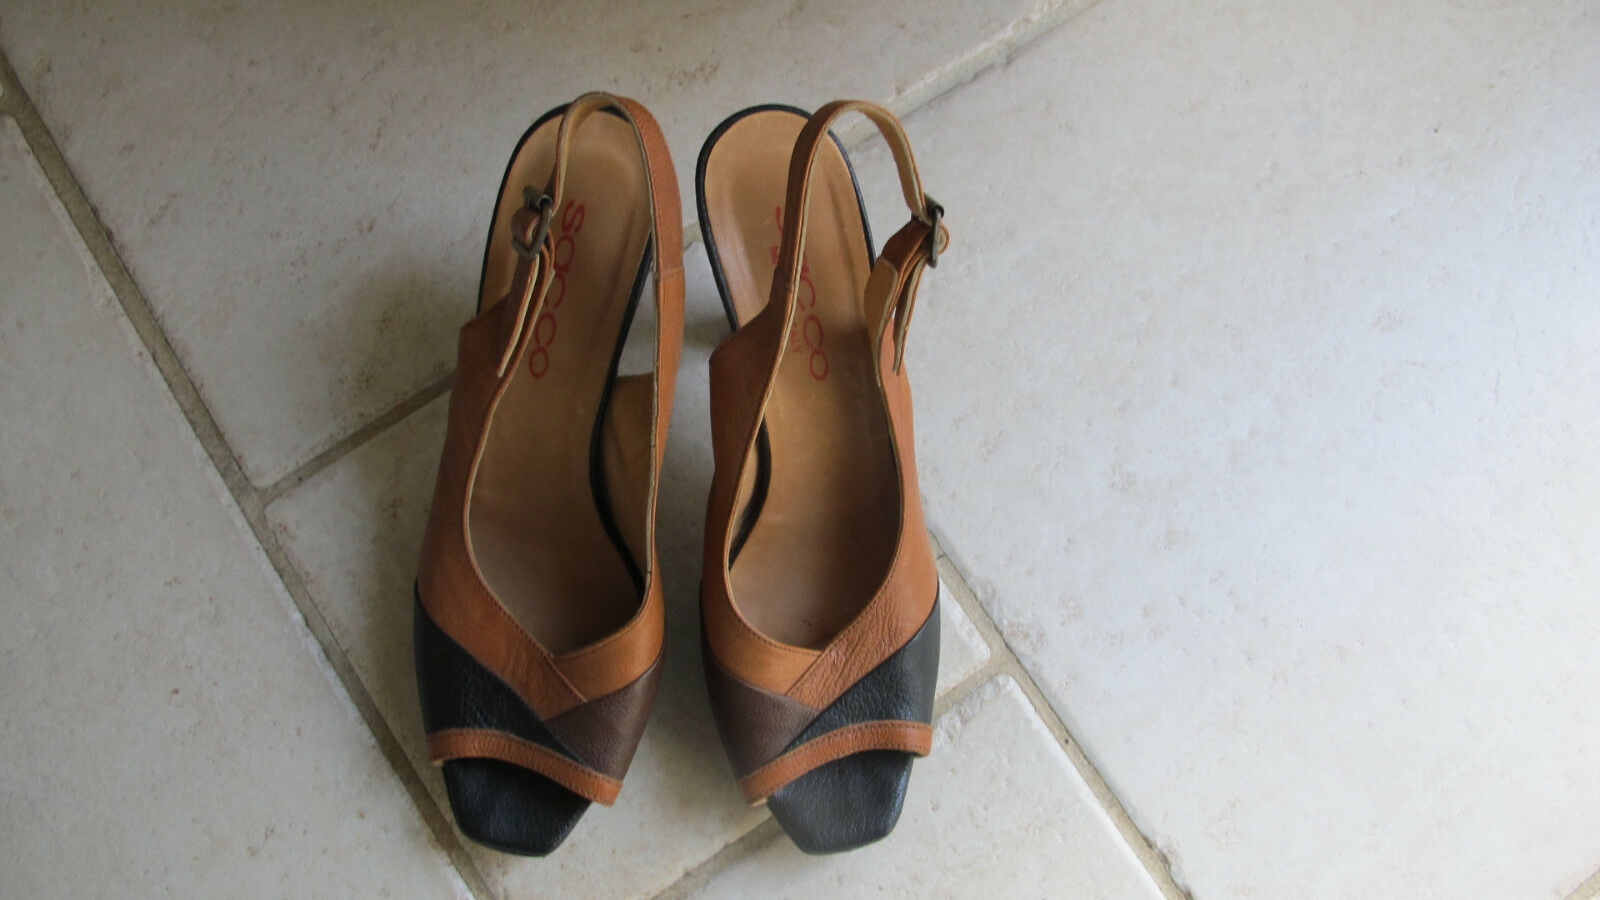 Sacco Tri Farbe Leather Open Toe Slingback Heels.Größe 40 EUR, 10 US.